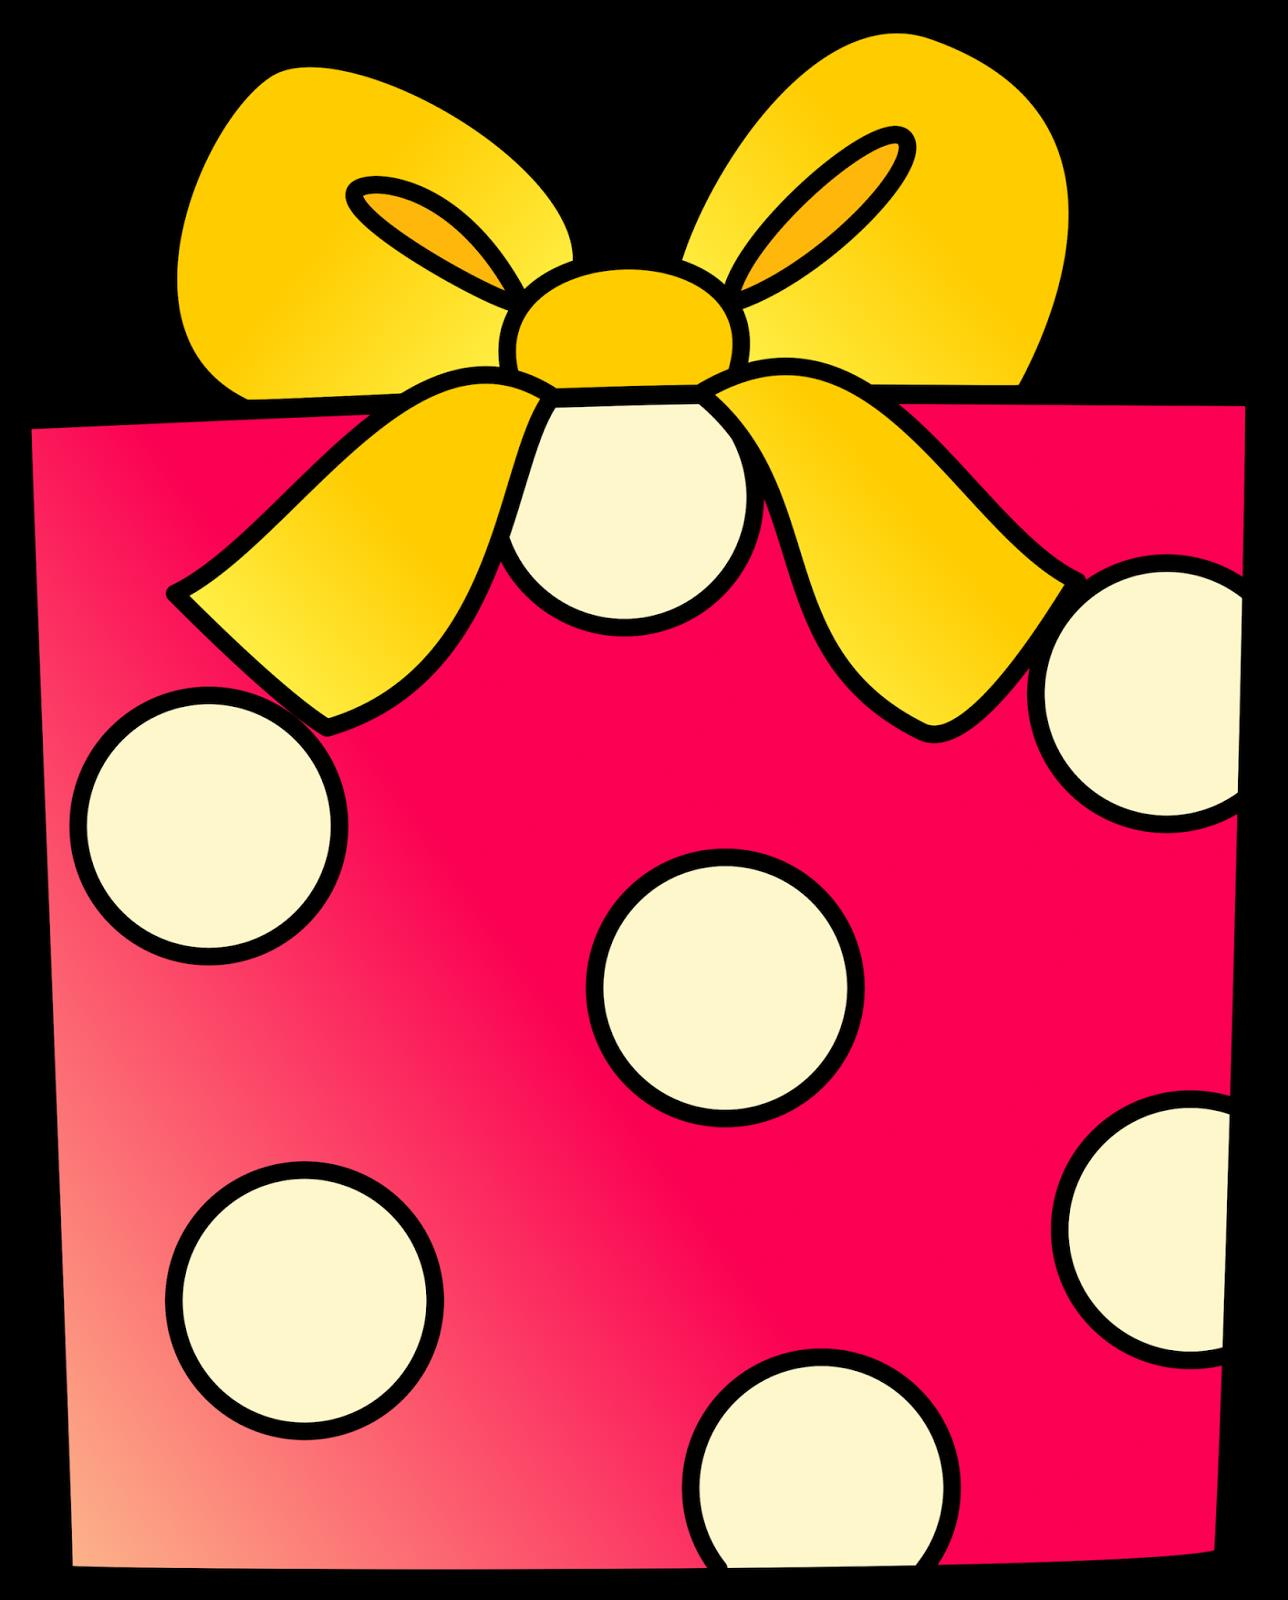 birthday present clipart ; Gift-birthday-present-clip-art-free-clipart-images-7